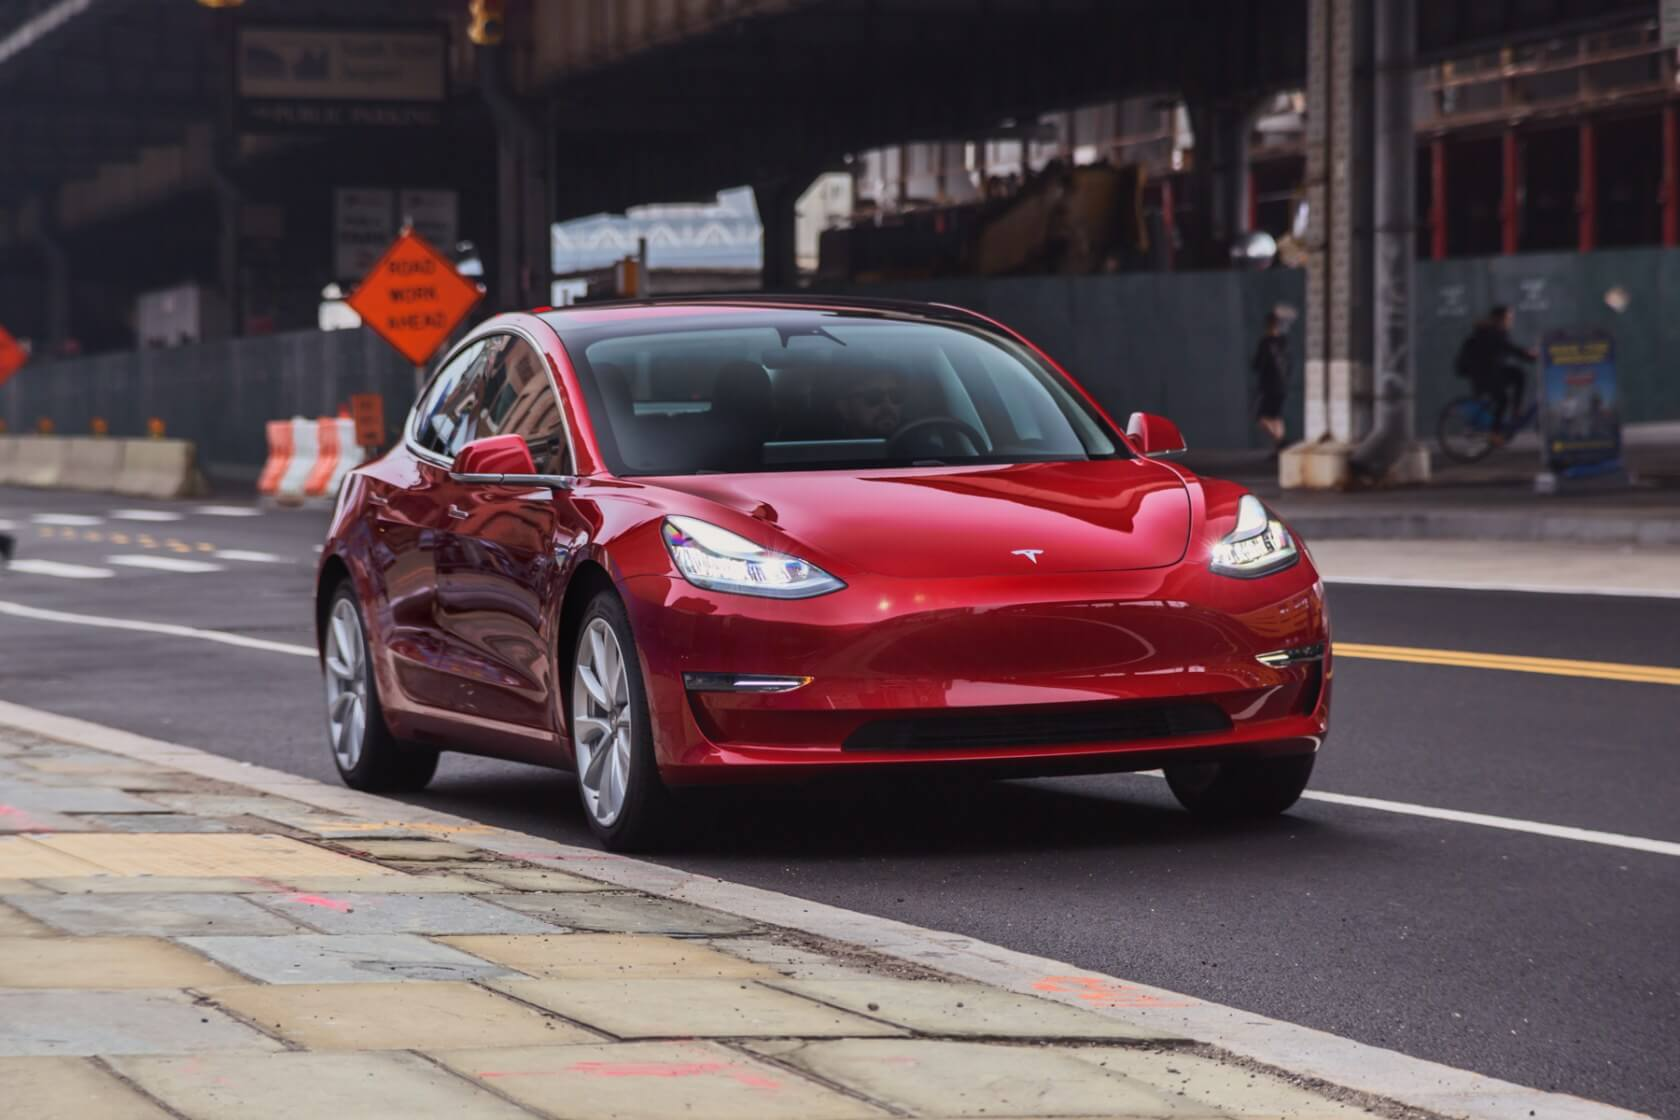 Hack a Tesla Model 3, get cash and the vehicle